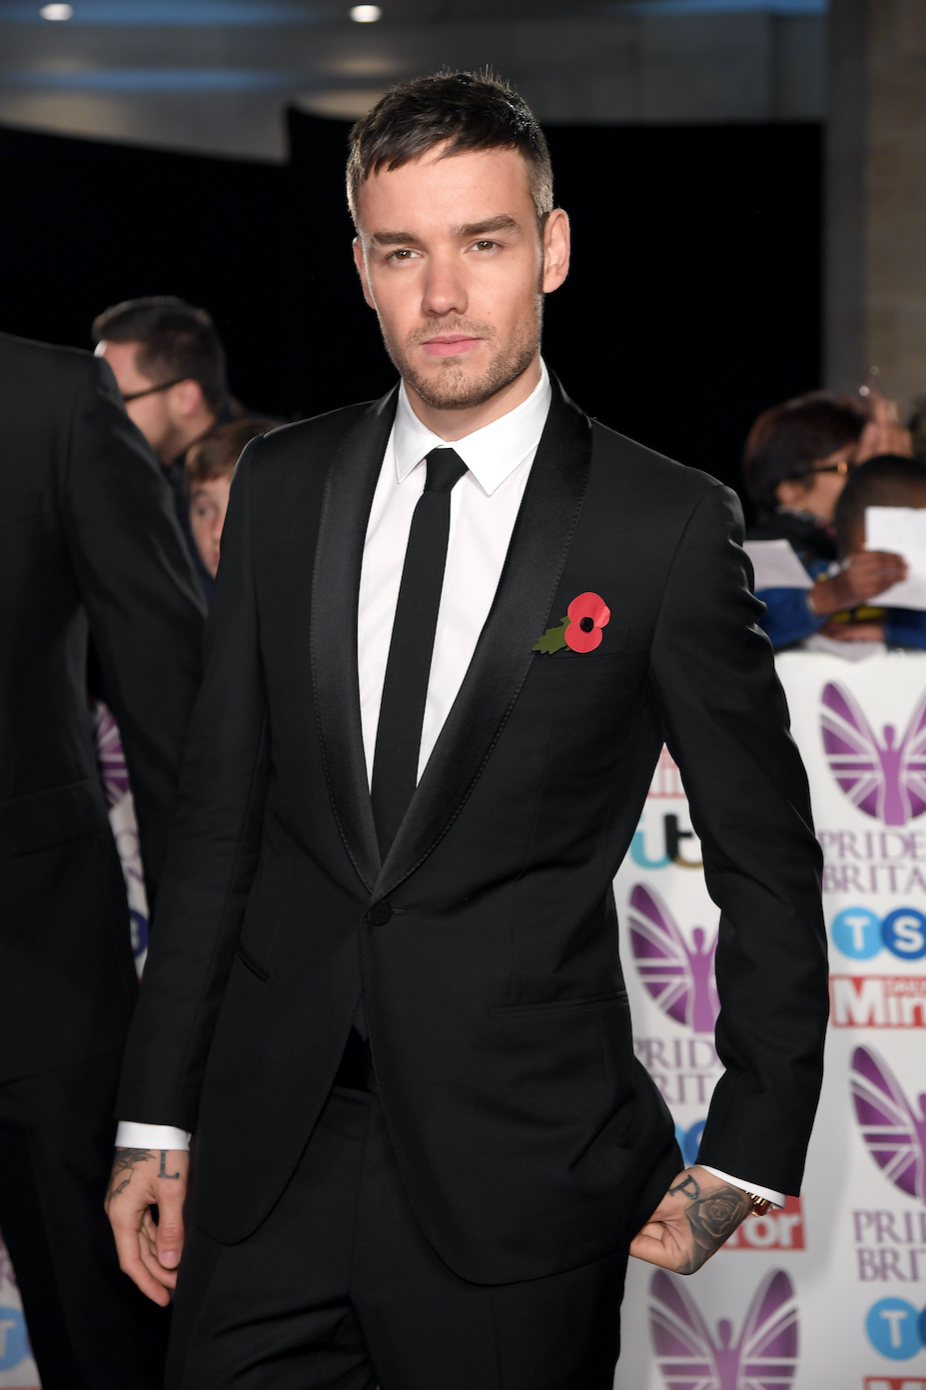 One Direction's Liam Payne opens up about his new girlfriend